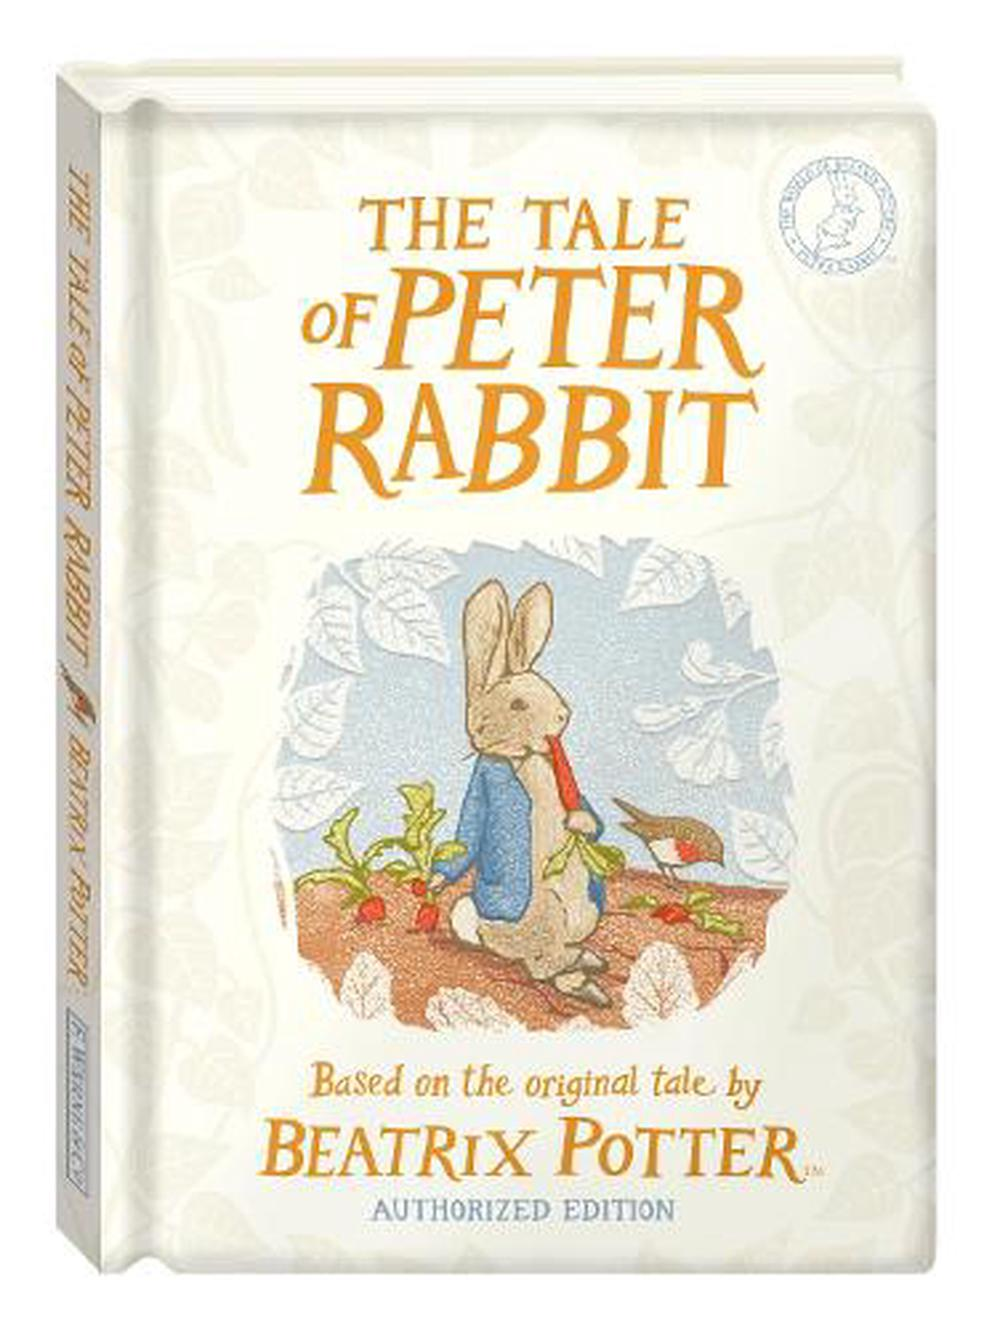 The Tale of Peter Rabbit: Gift Edition